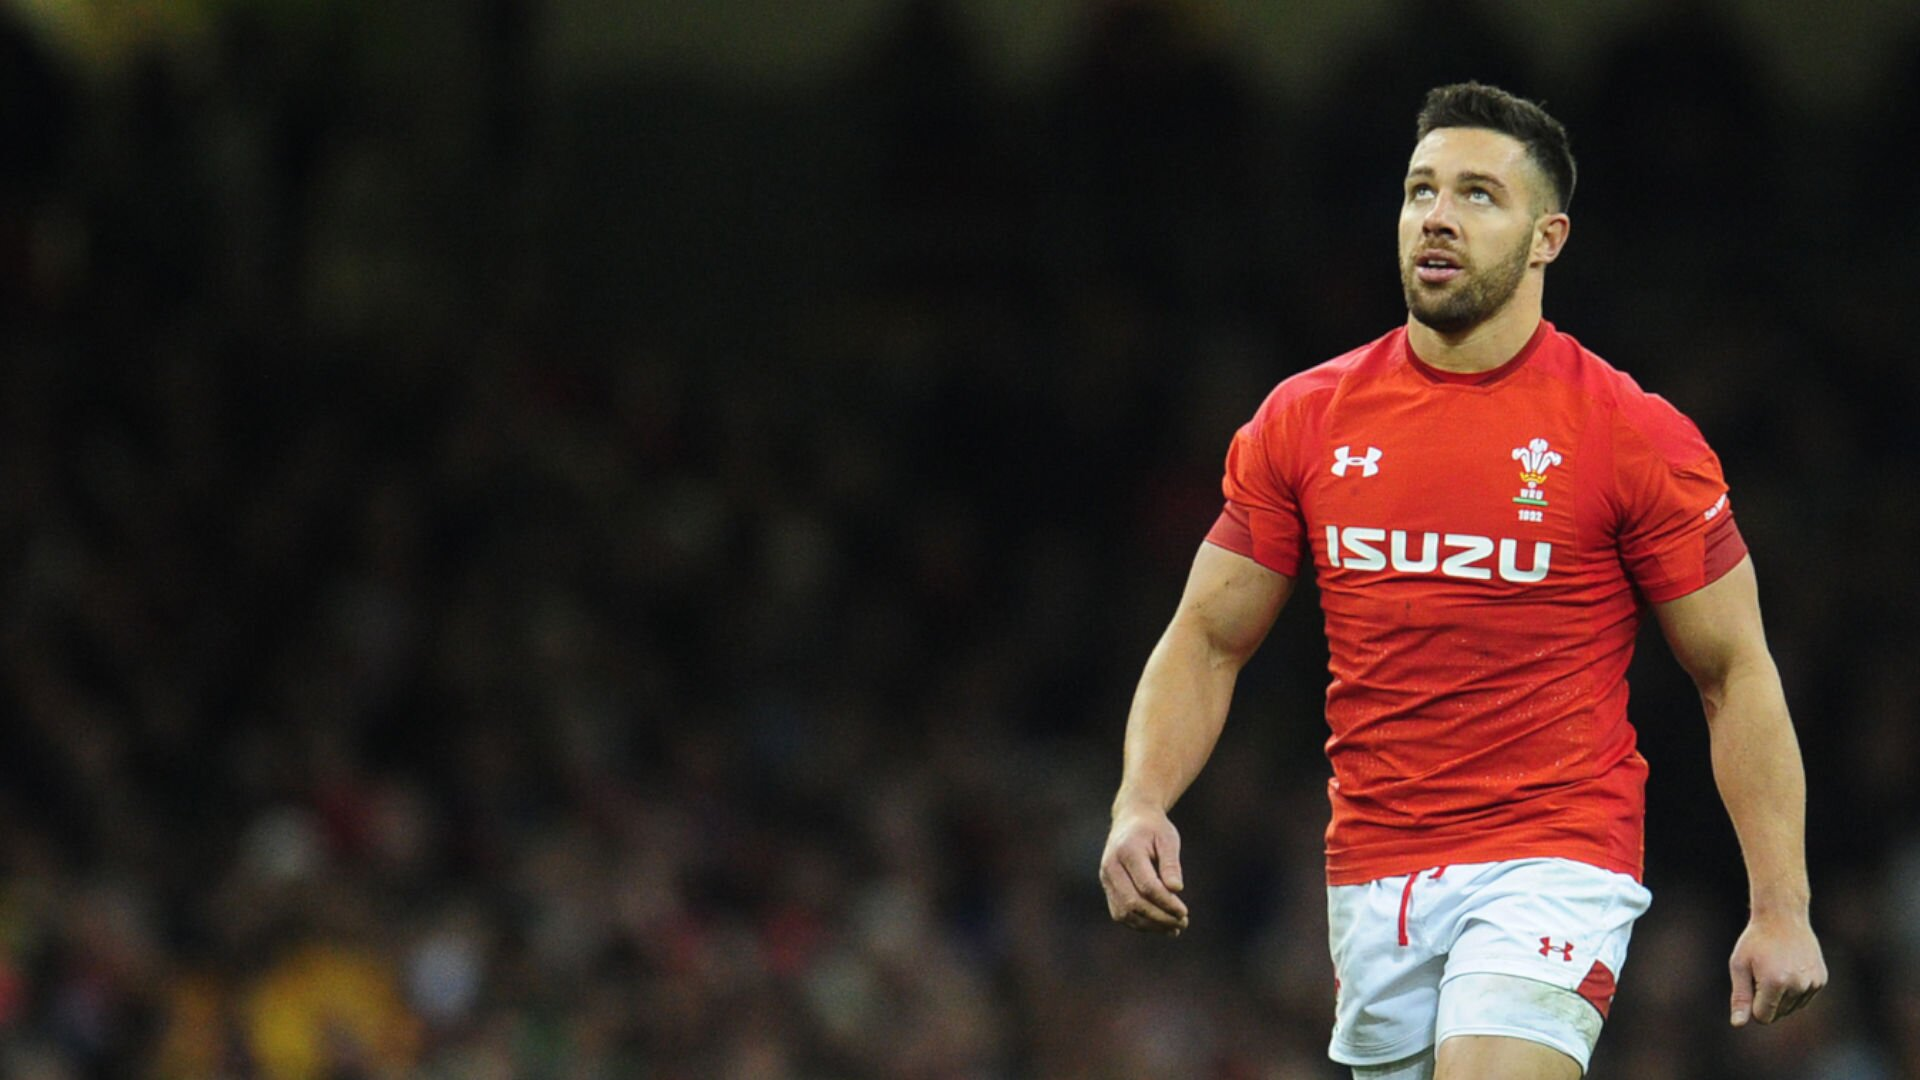 We need to talk about Rhys Webb